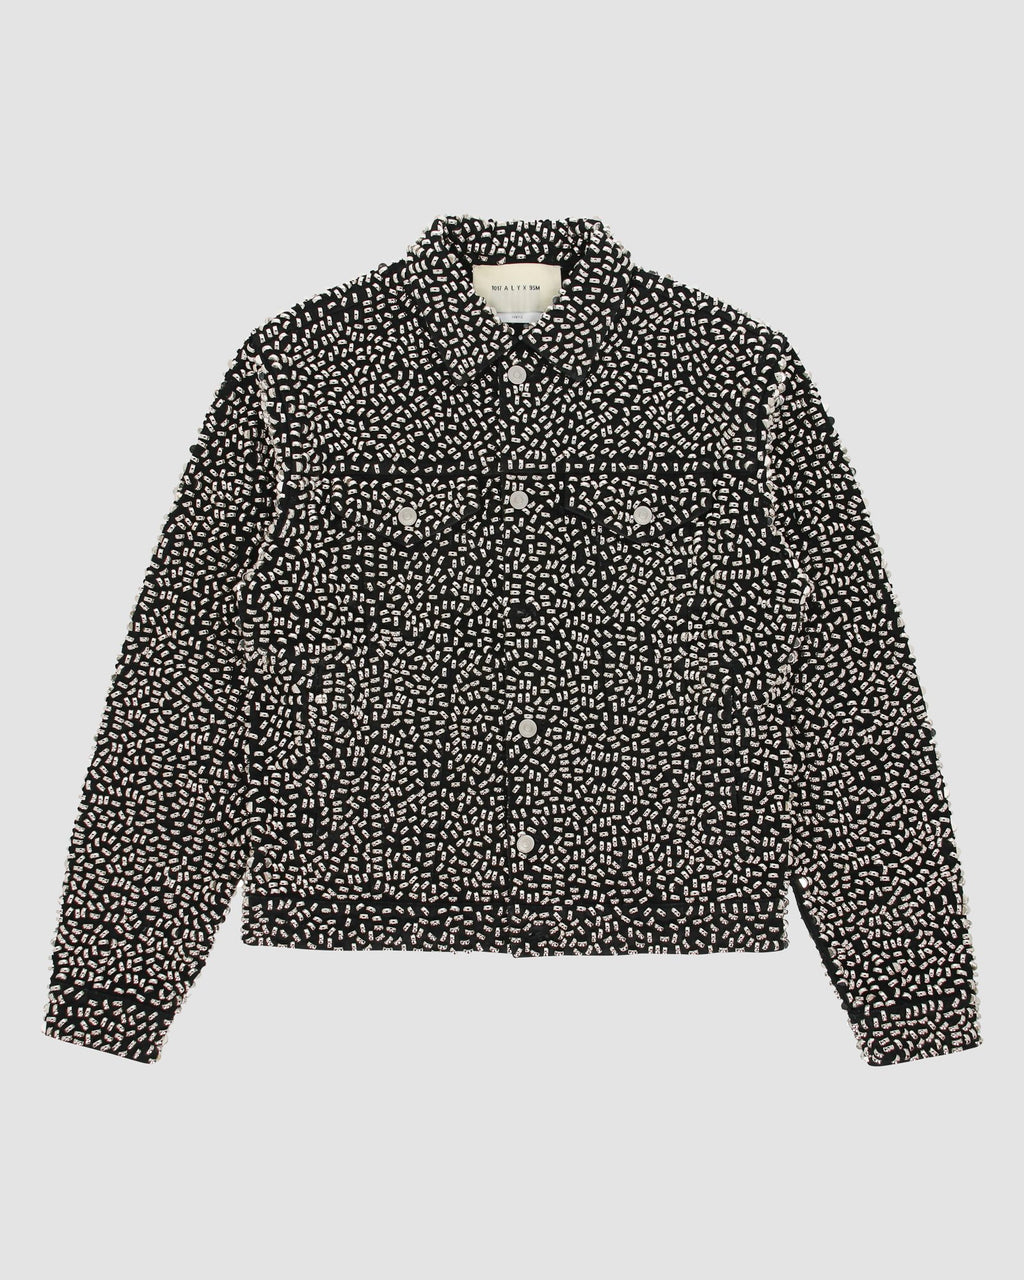 UNISEX STUDDED DENIM JACKET PRE-ORDER